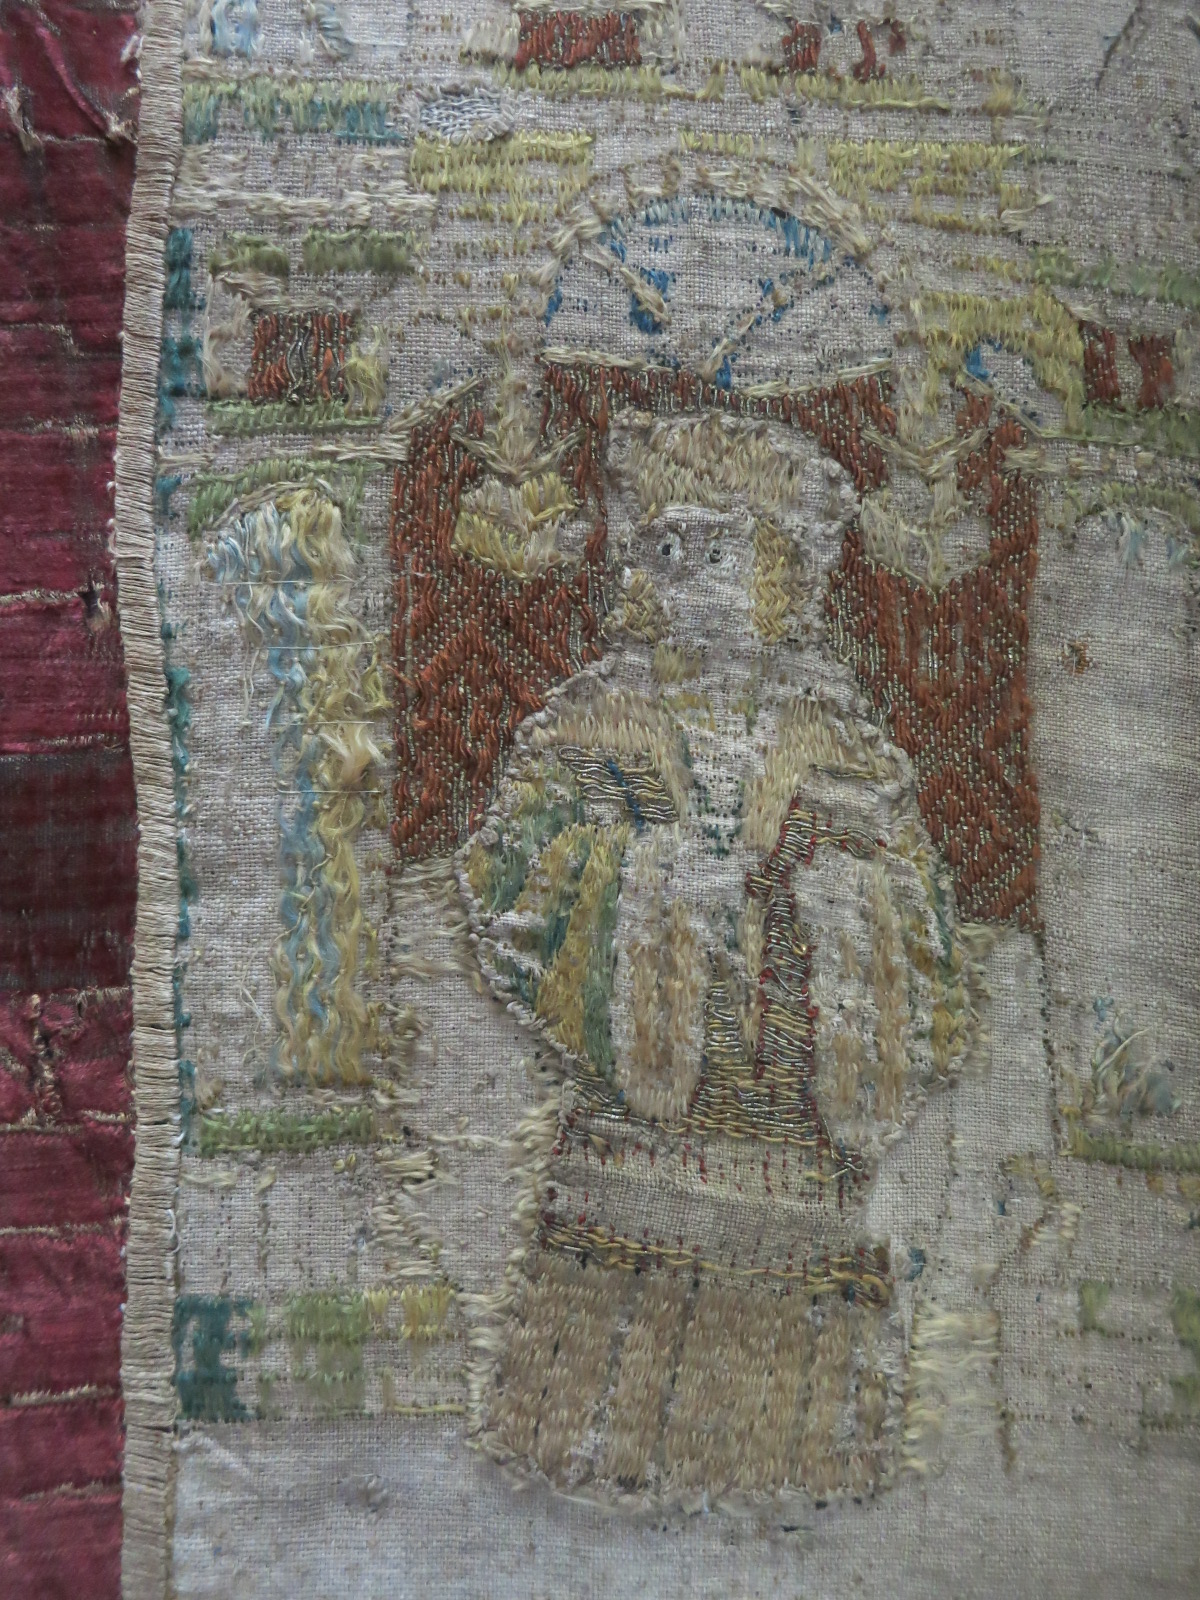 A saint on the orphrey of the Skenfrith Cope